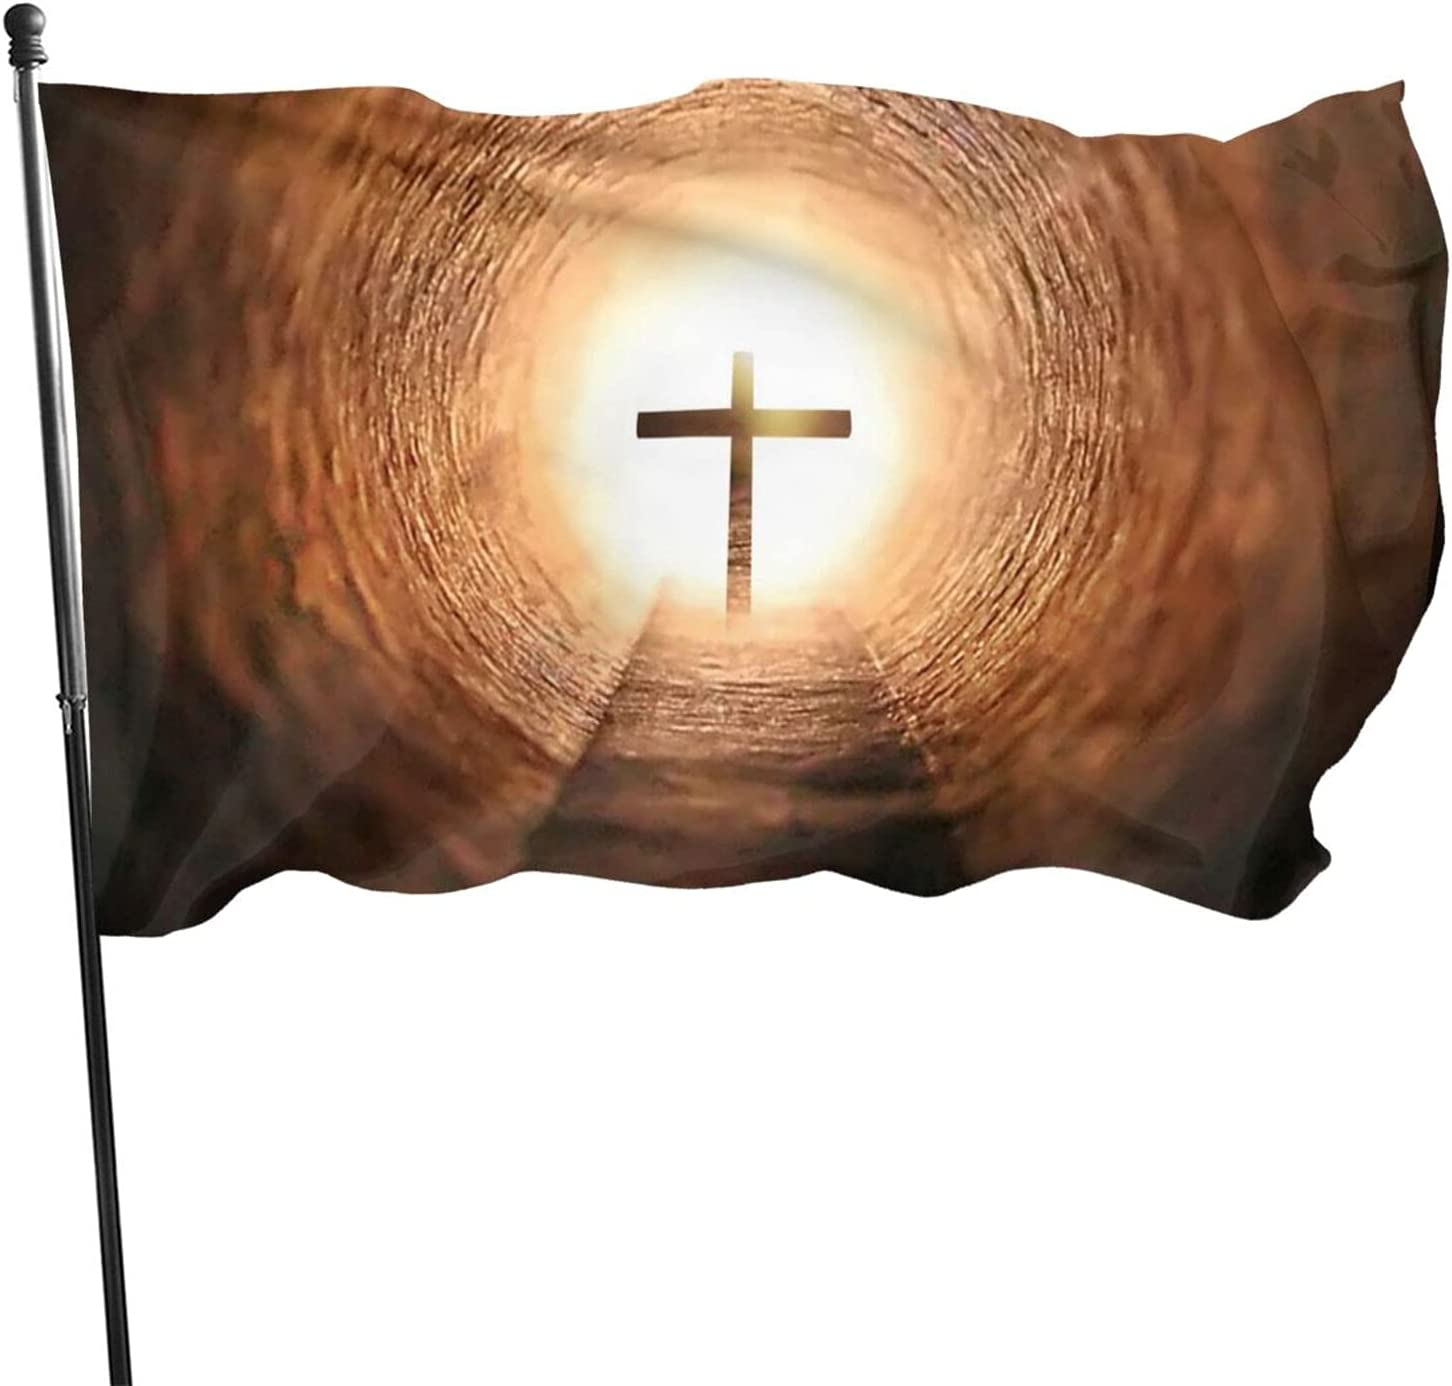 Christian Wallpapers Flag Polyester Decoration USA Christian Cross Flags, Home Yard Indoor Outdoor Banner Garden Flag 3x5 Ft